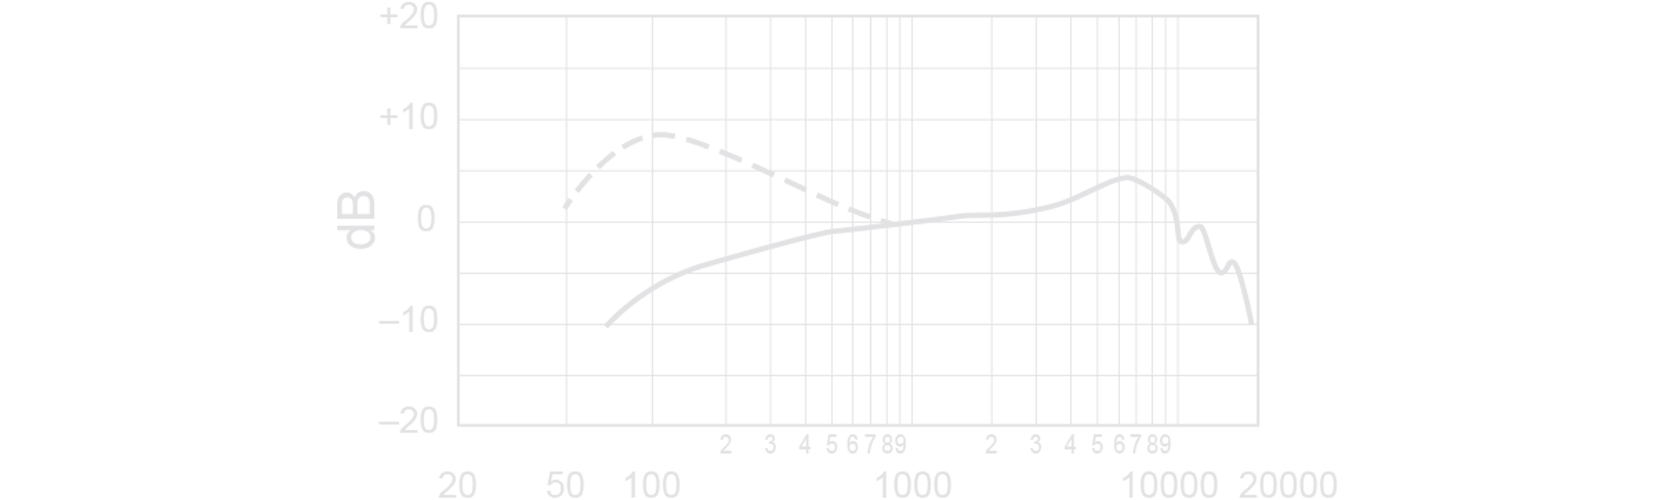 Shure QLX-D Digitaal Draadloos Systeem Frequency Response Curve Image